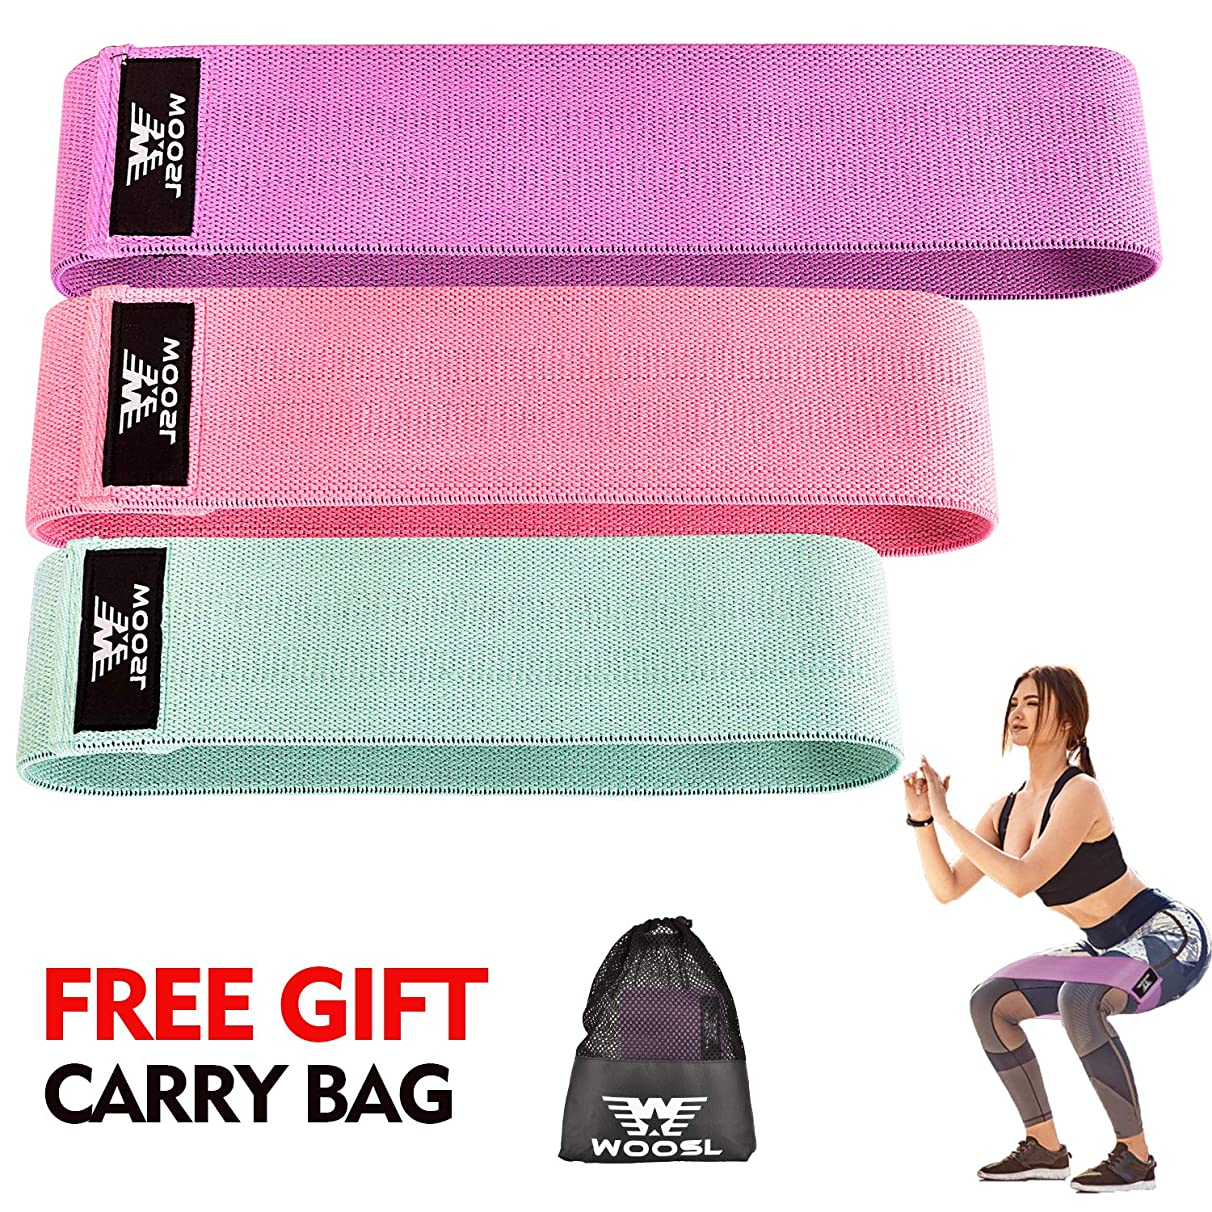 WOOSL Booty Bands - Fabric Resistance Bands for Leg and Butt,Exercise Bands Hip Bands Wide Workout Bands Hip Resistance Bands Anti Slip Circle Fitness Band Elastic Sports Bands